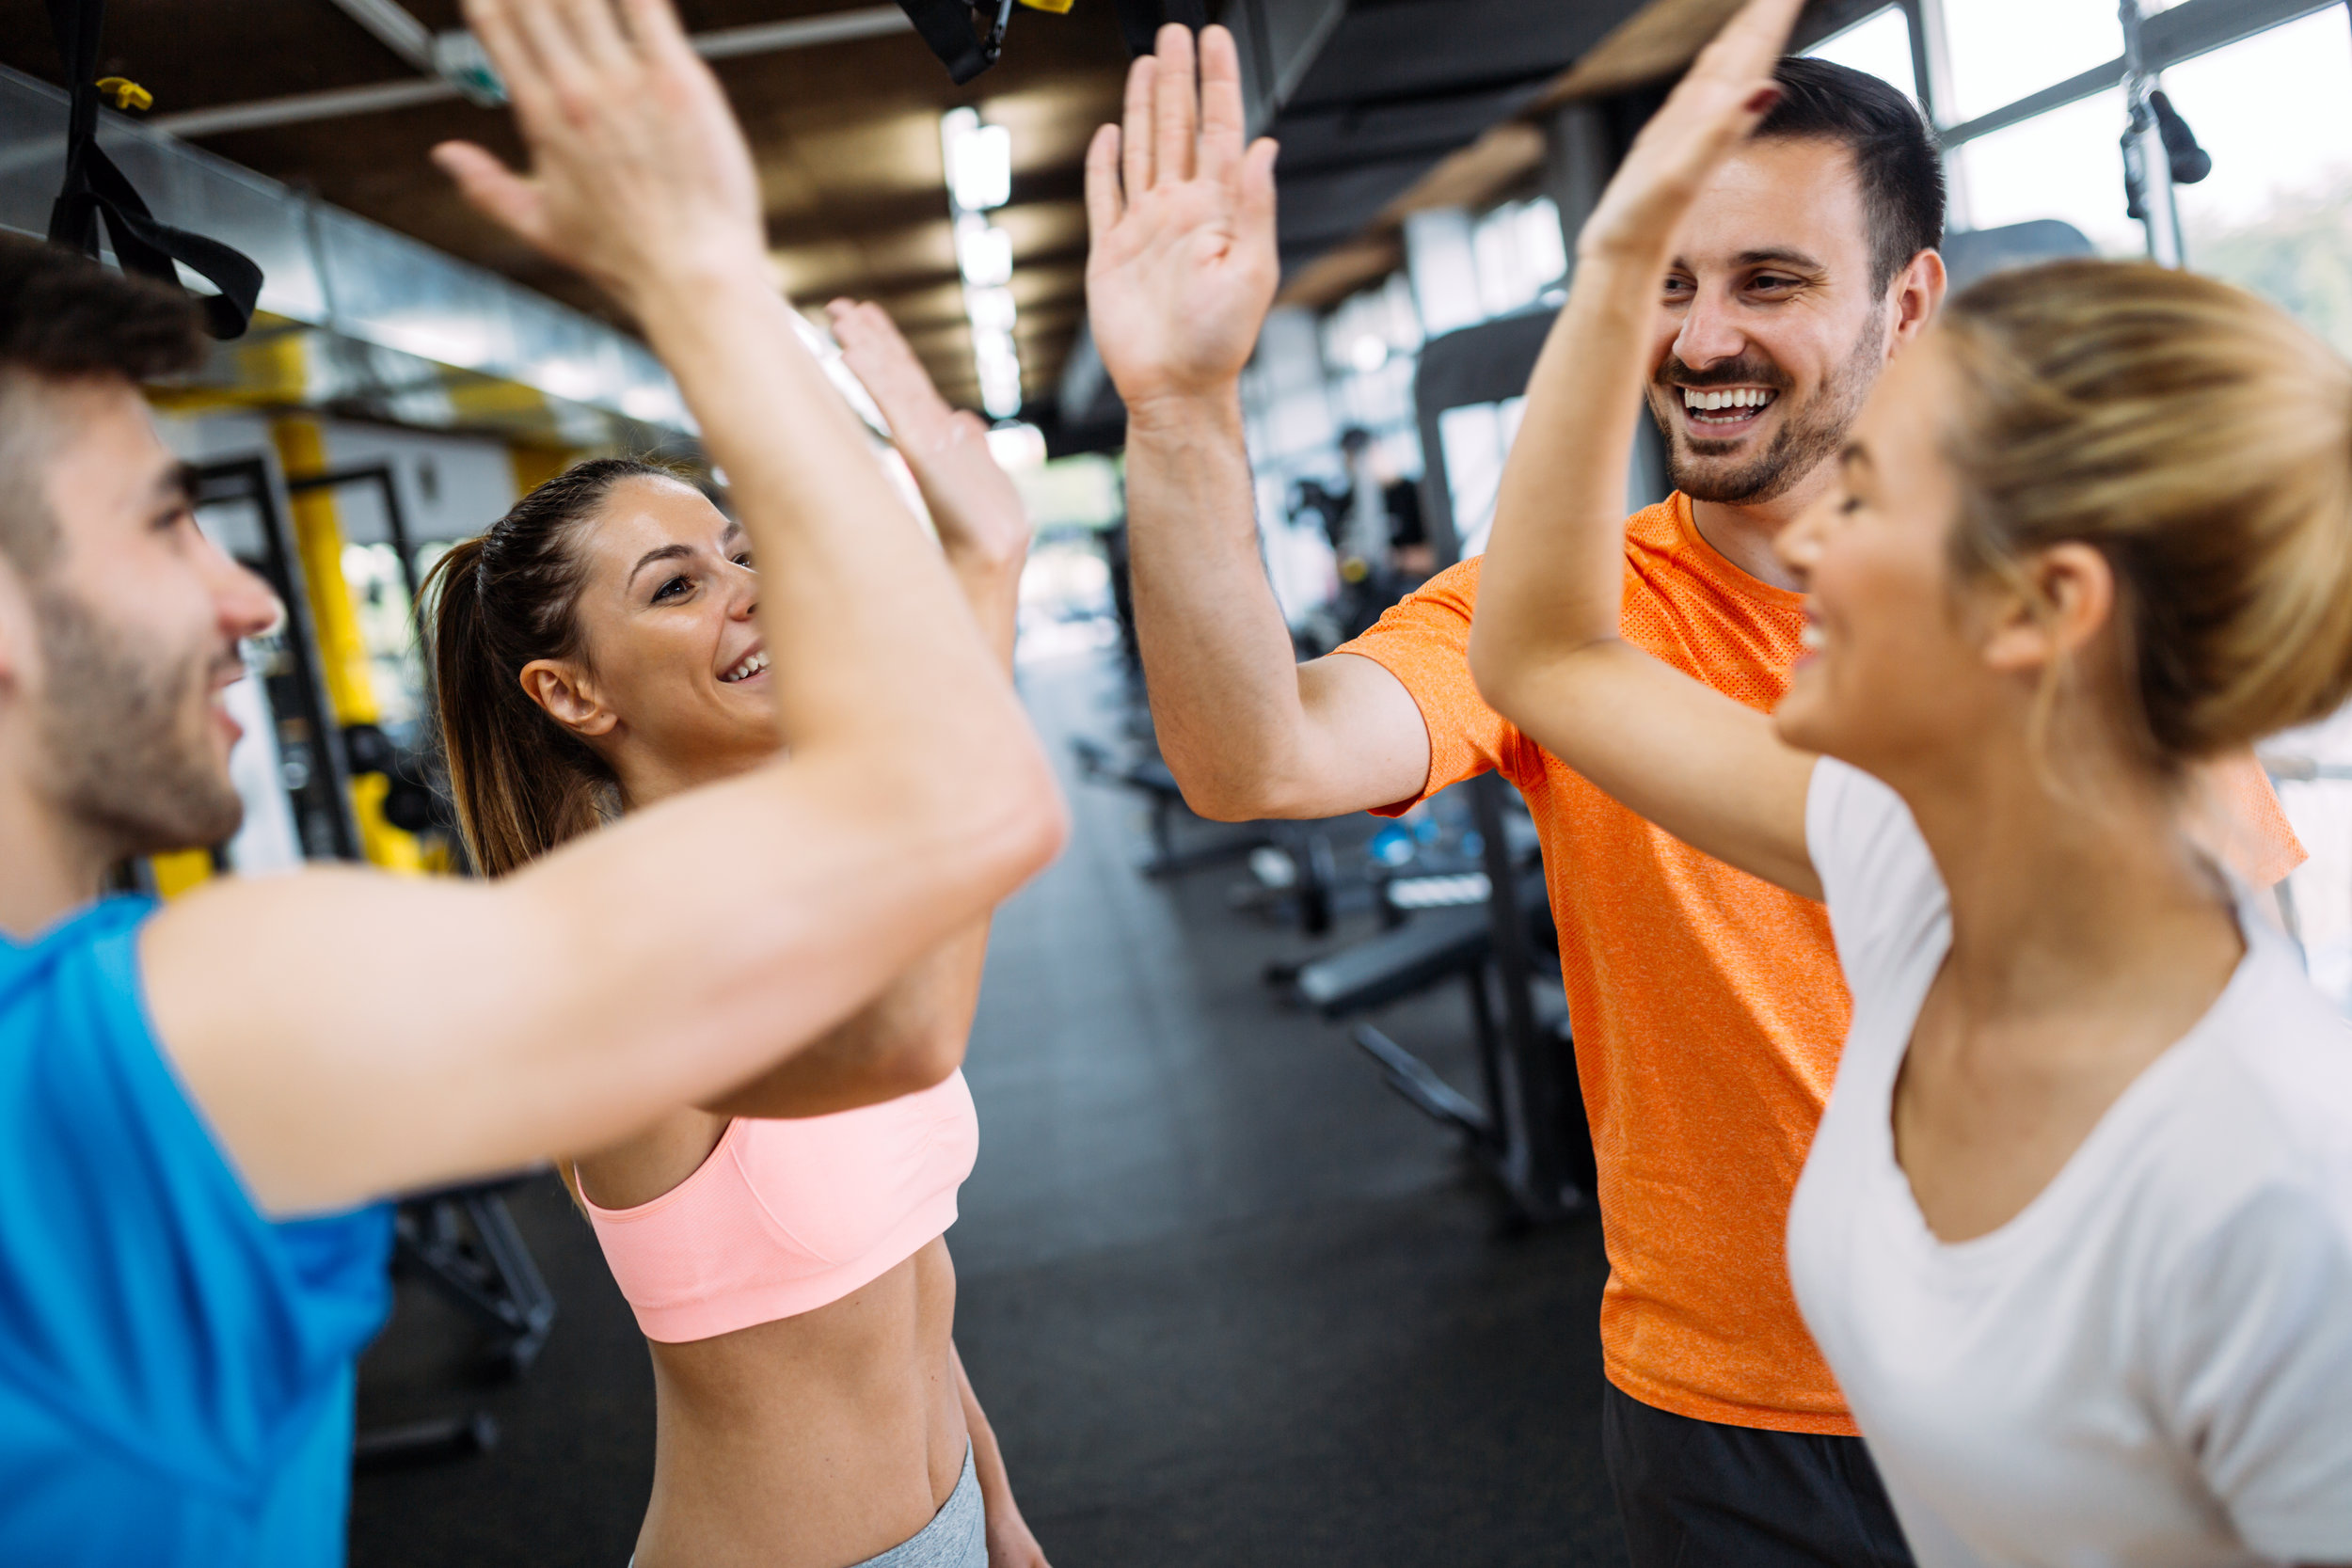 happy-fitness-class-giving-high-five-after-WR58HUZ.jpg